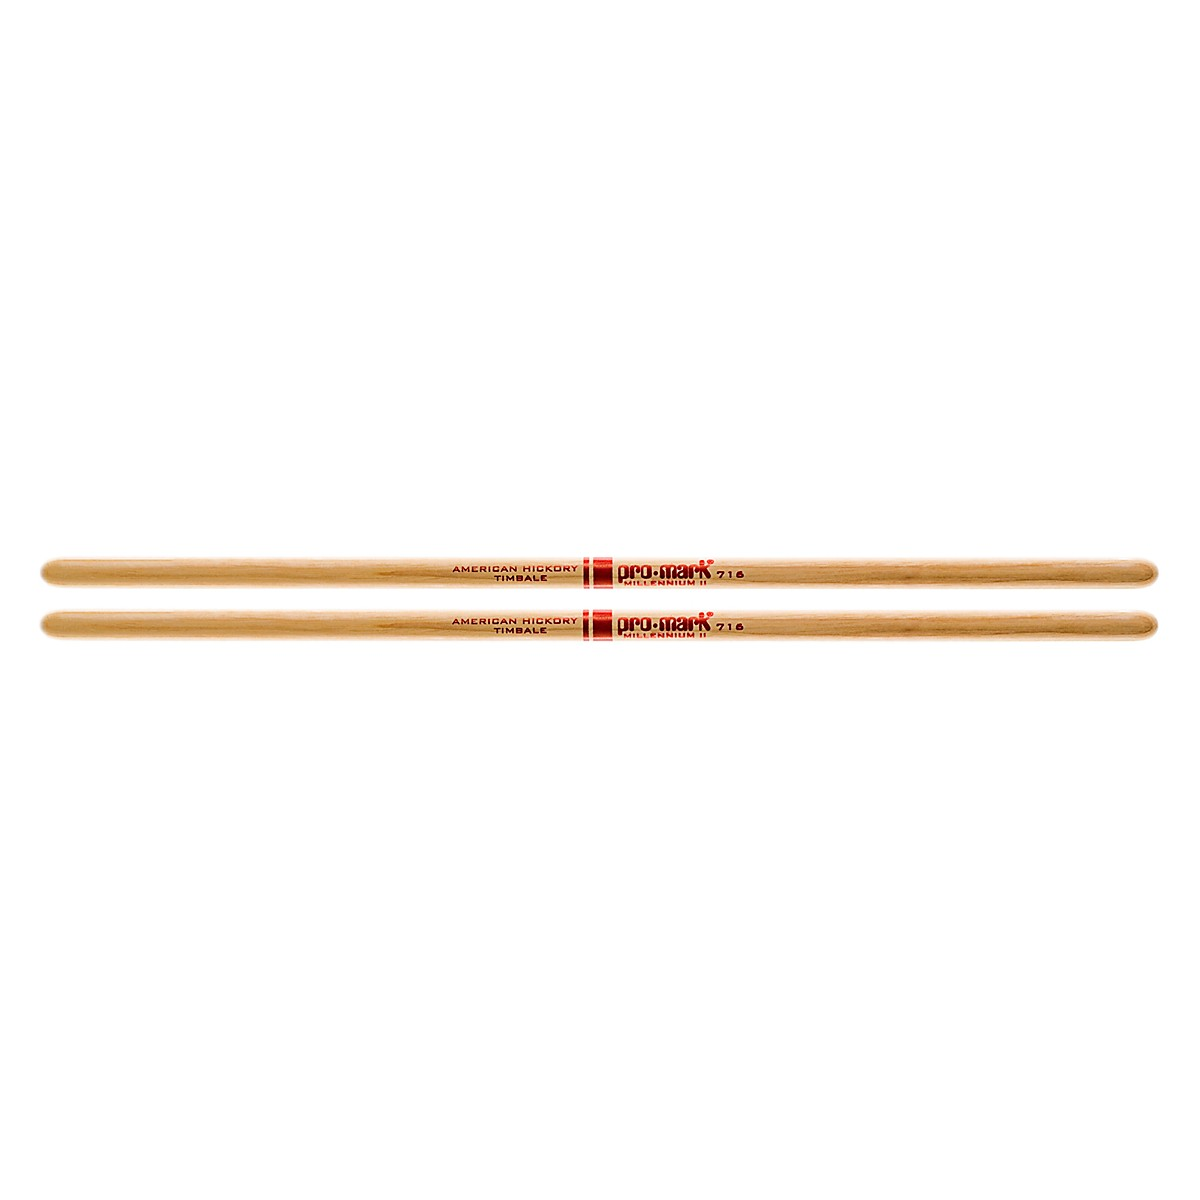 Promark Timbale Sticks 4-Pair